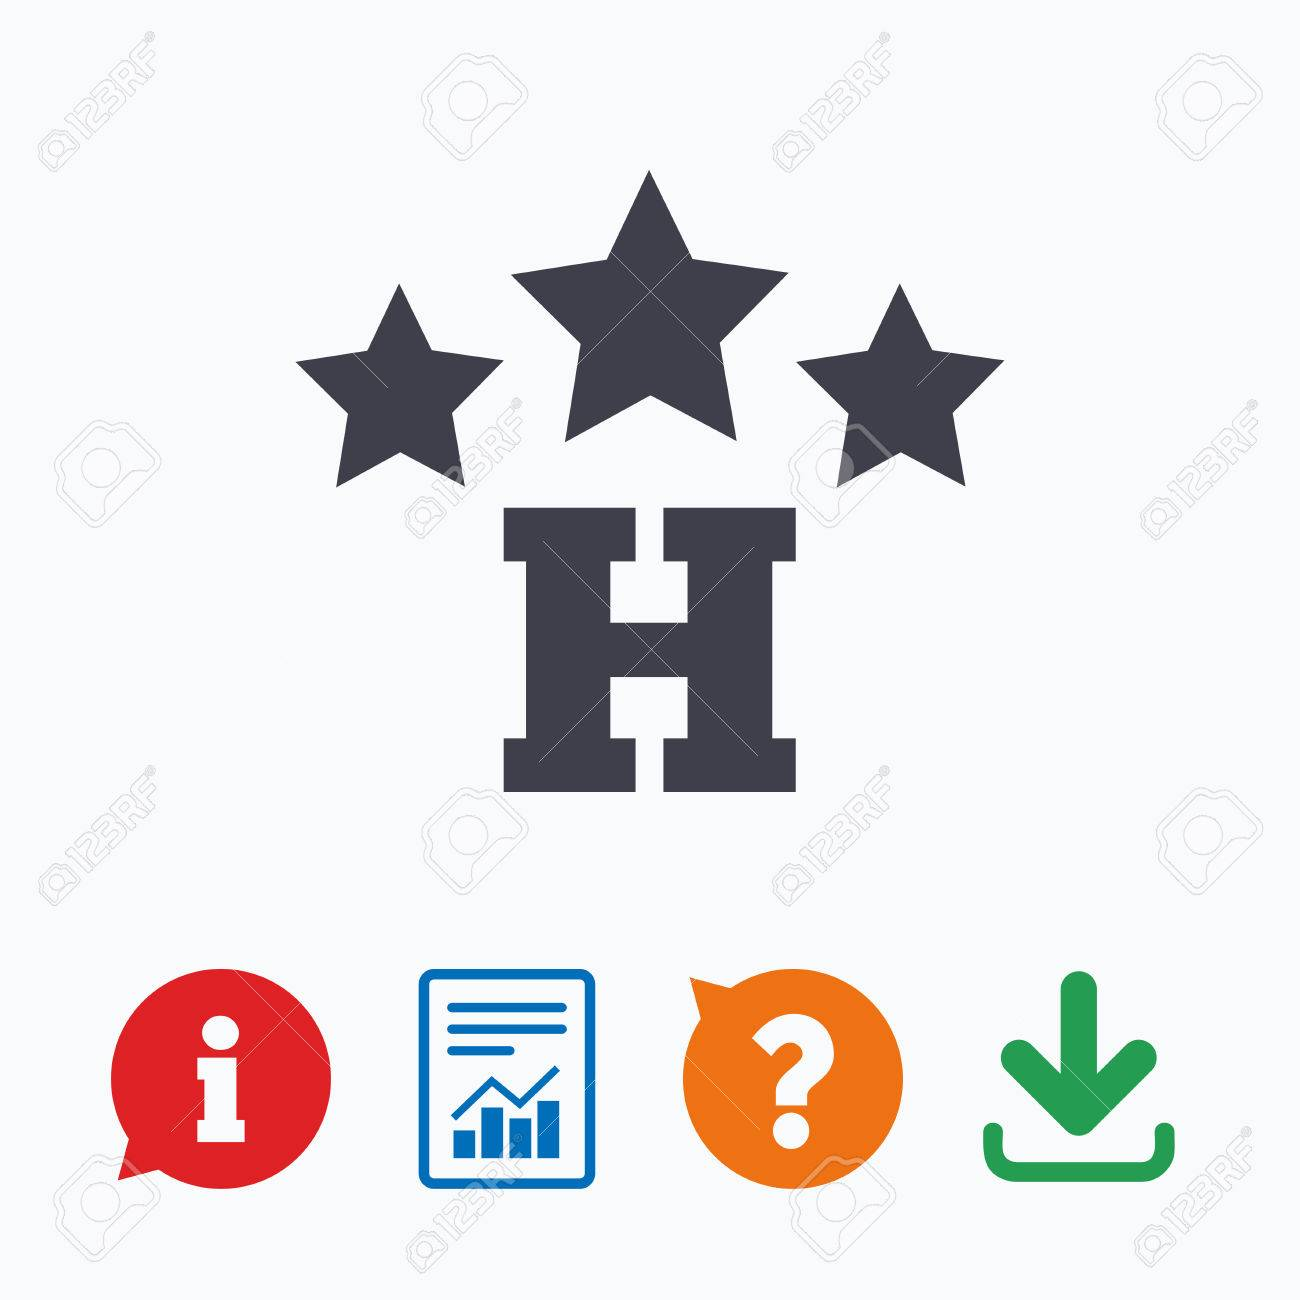 Three star Hotel apartment sign icon  Travel rest place symbol